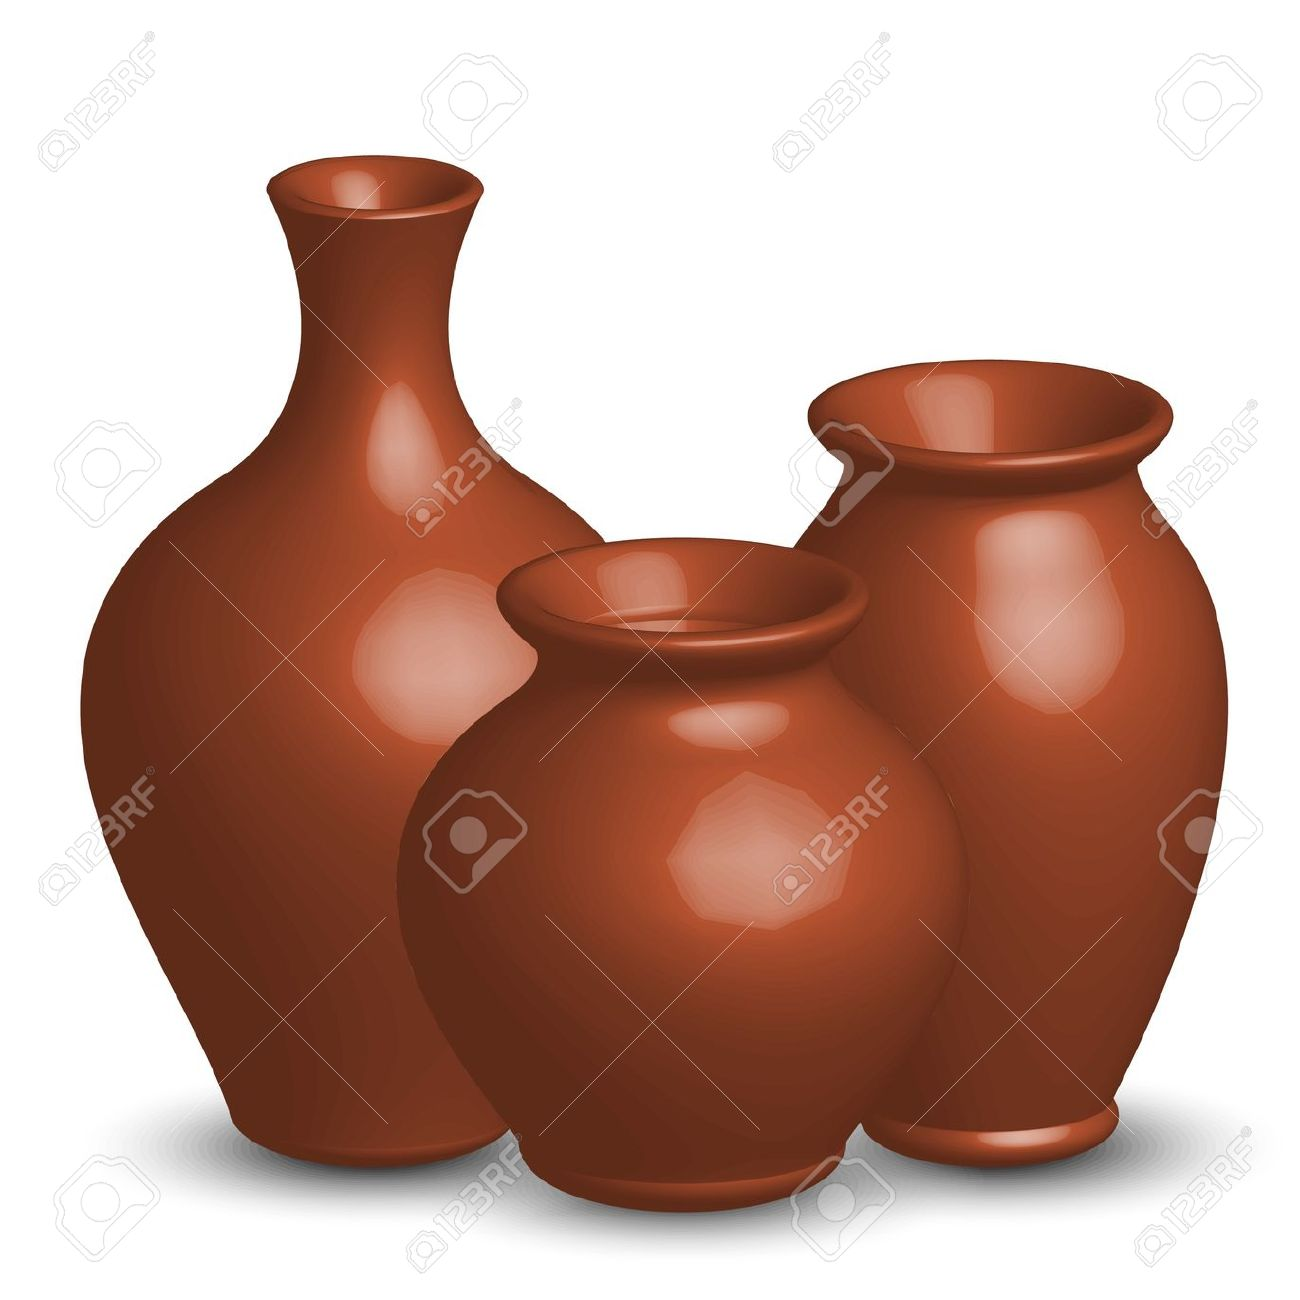 Clay pot clipart.